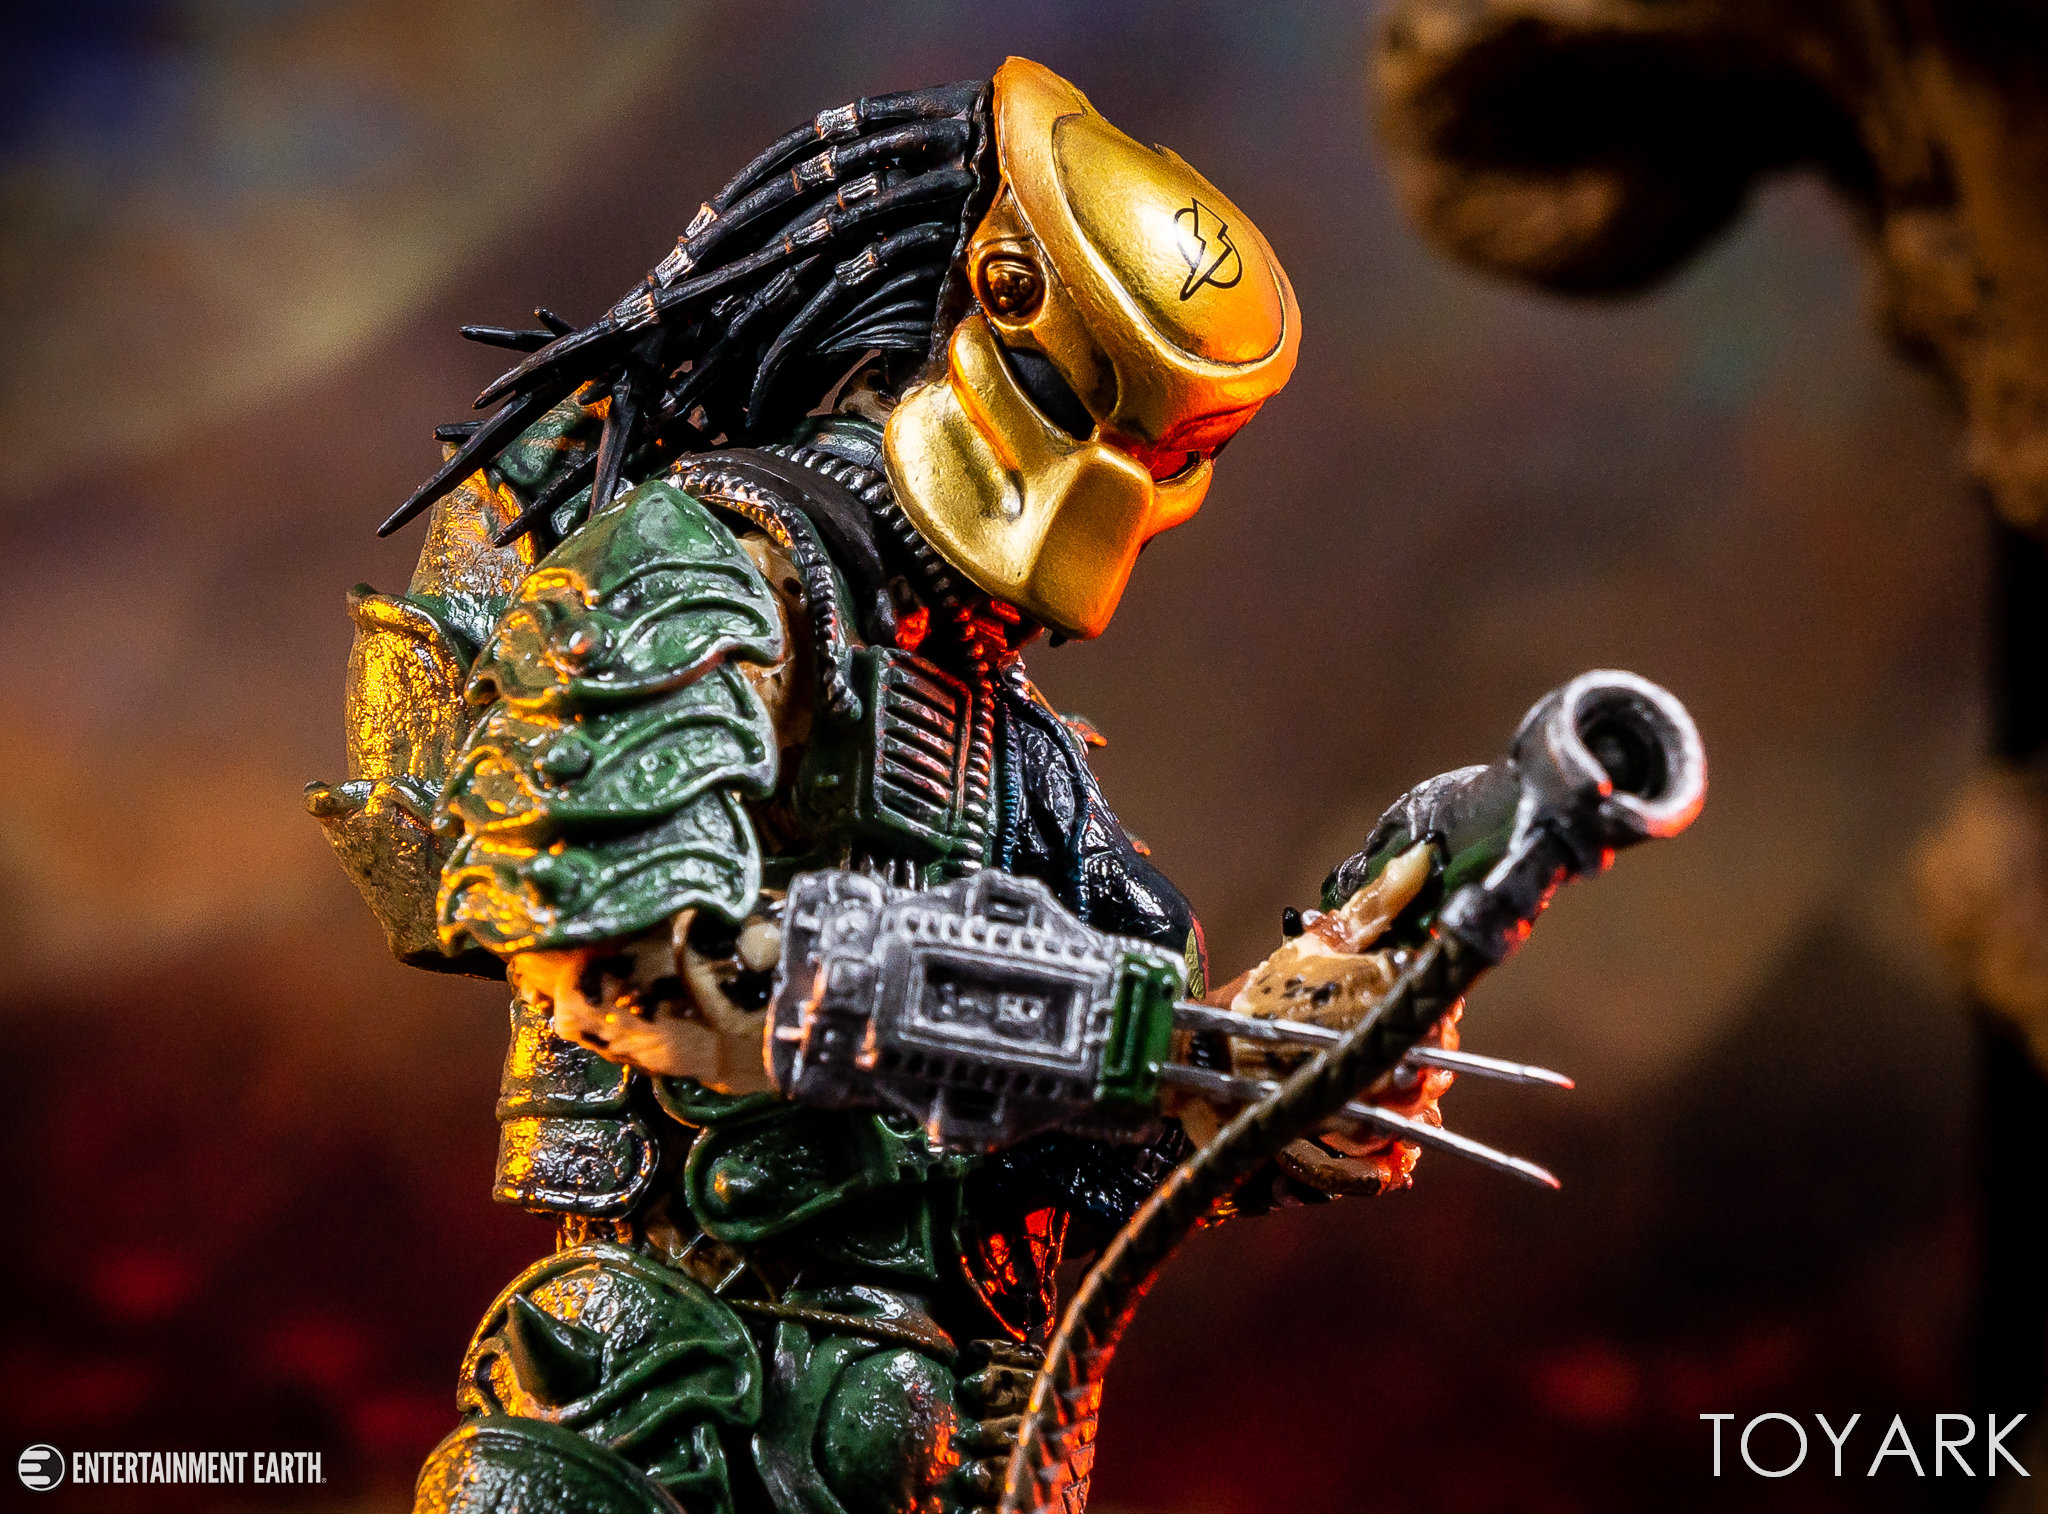 https://news.toyark.com/wp-content/uploads/sites/4/2019/01/Predator-NECA-Series-18-Figures-038.jpg